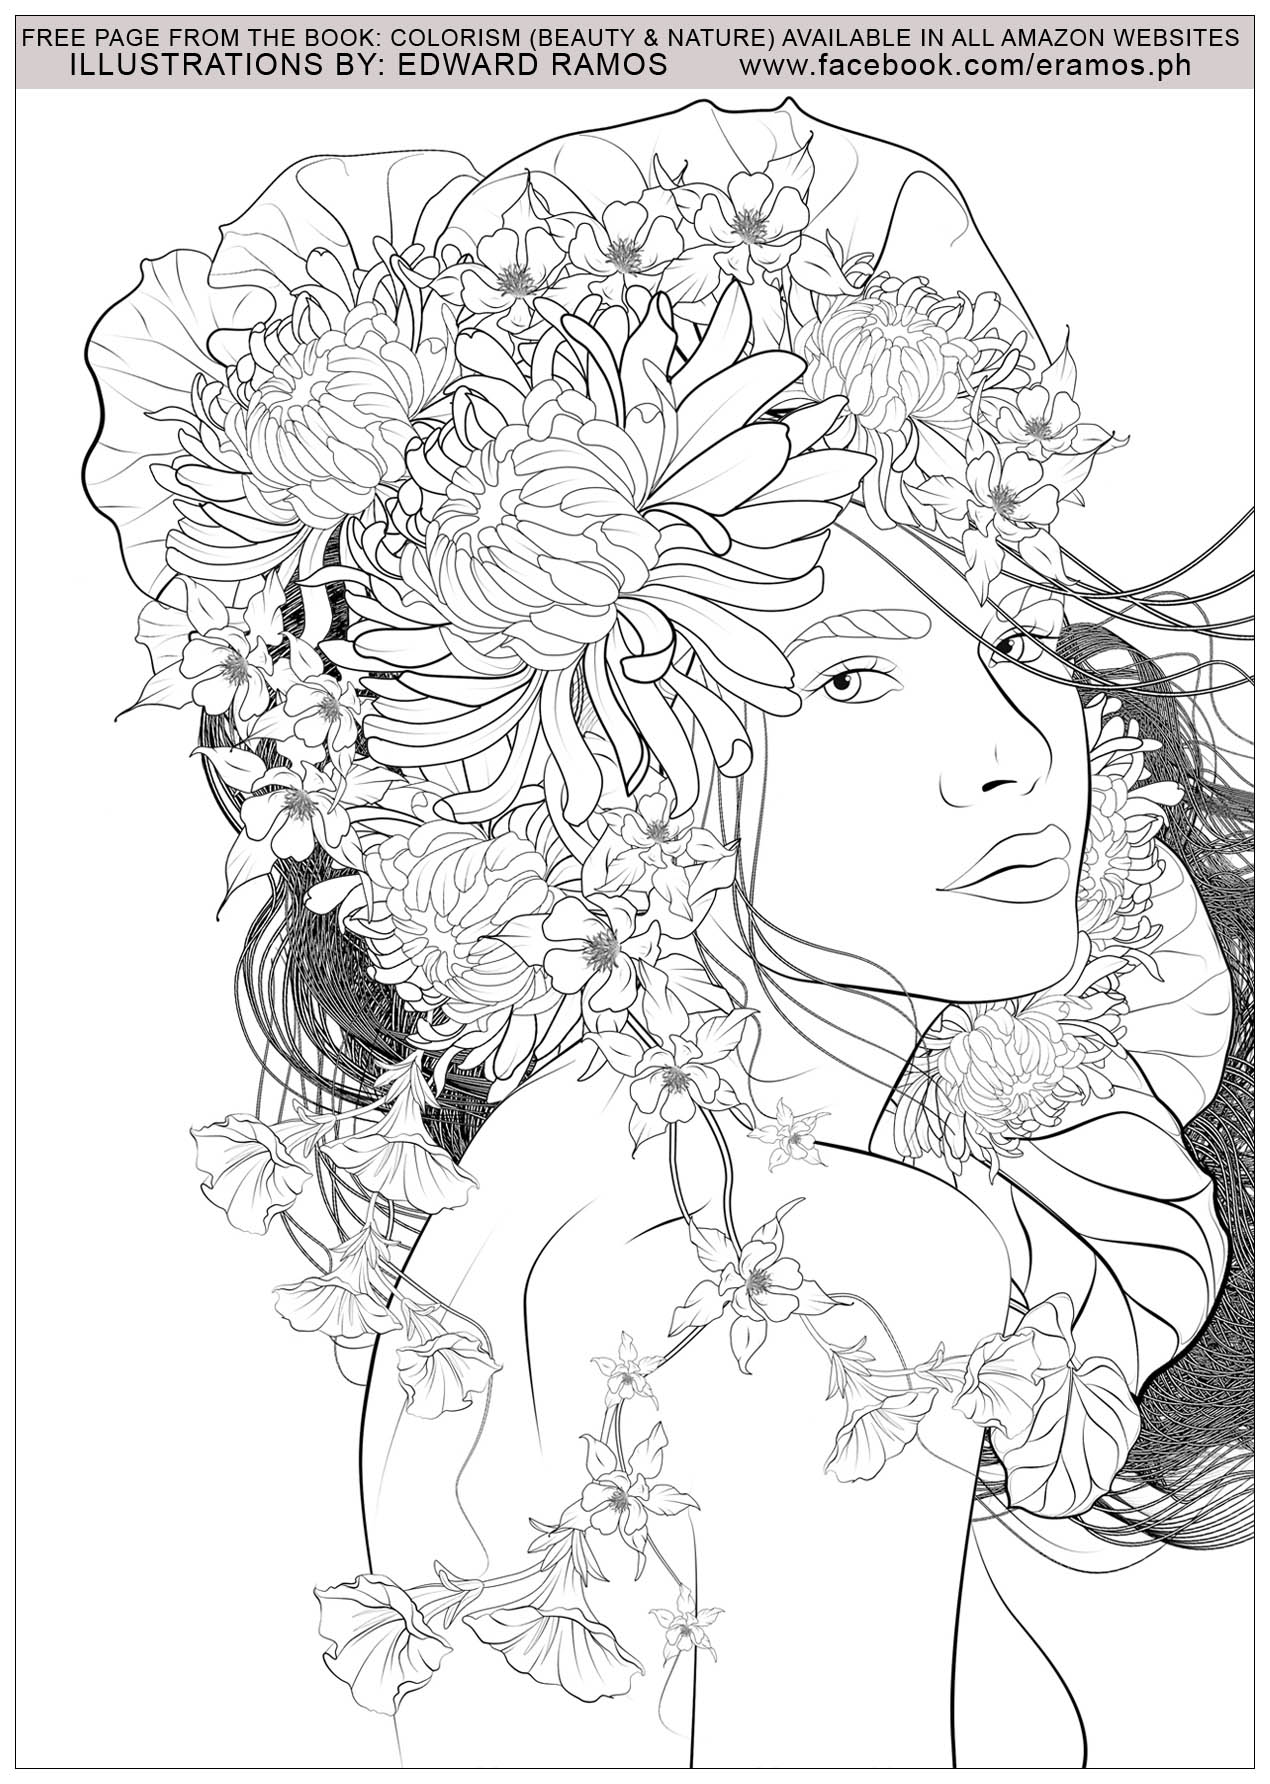 Illustration from the book Colorism - Beauty & Nature by Edward Ramos - 1